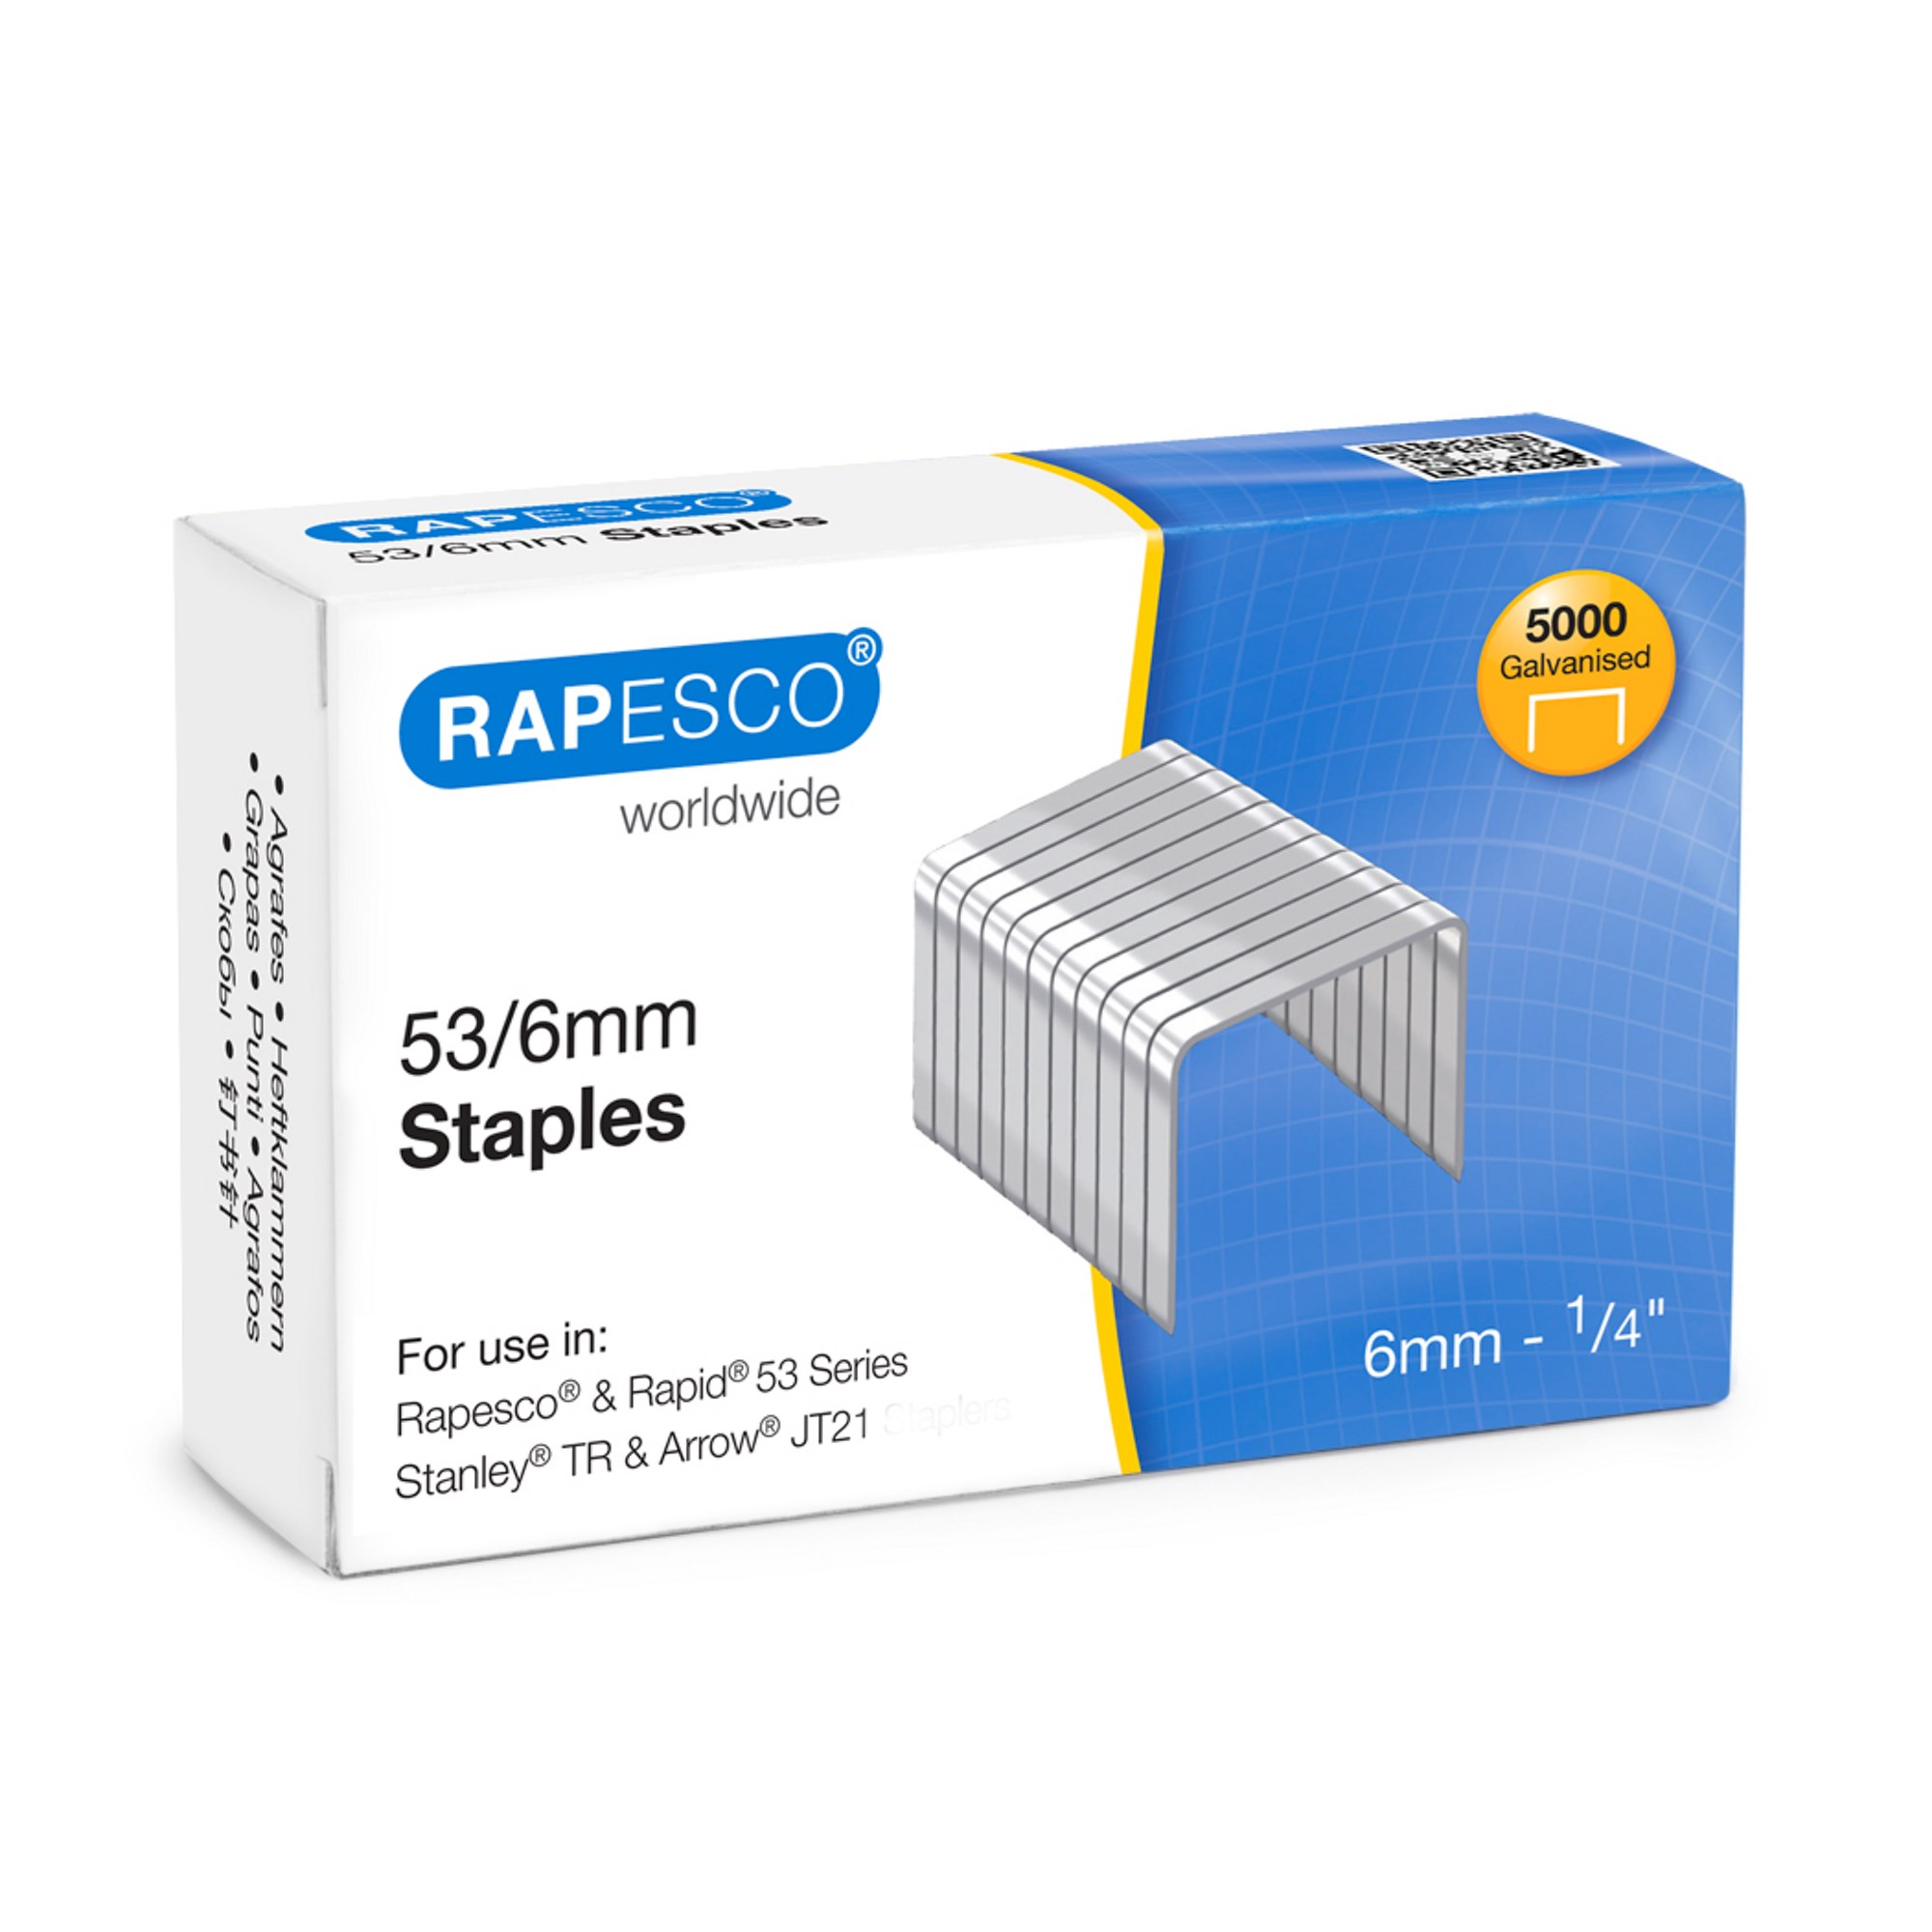 Rapesco Staples53/6mm - Pack of 5000